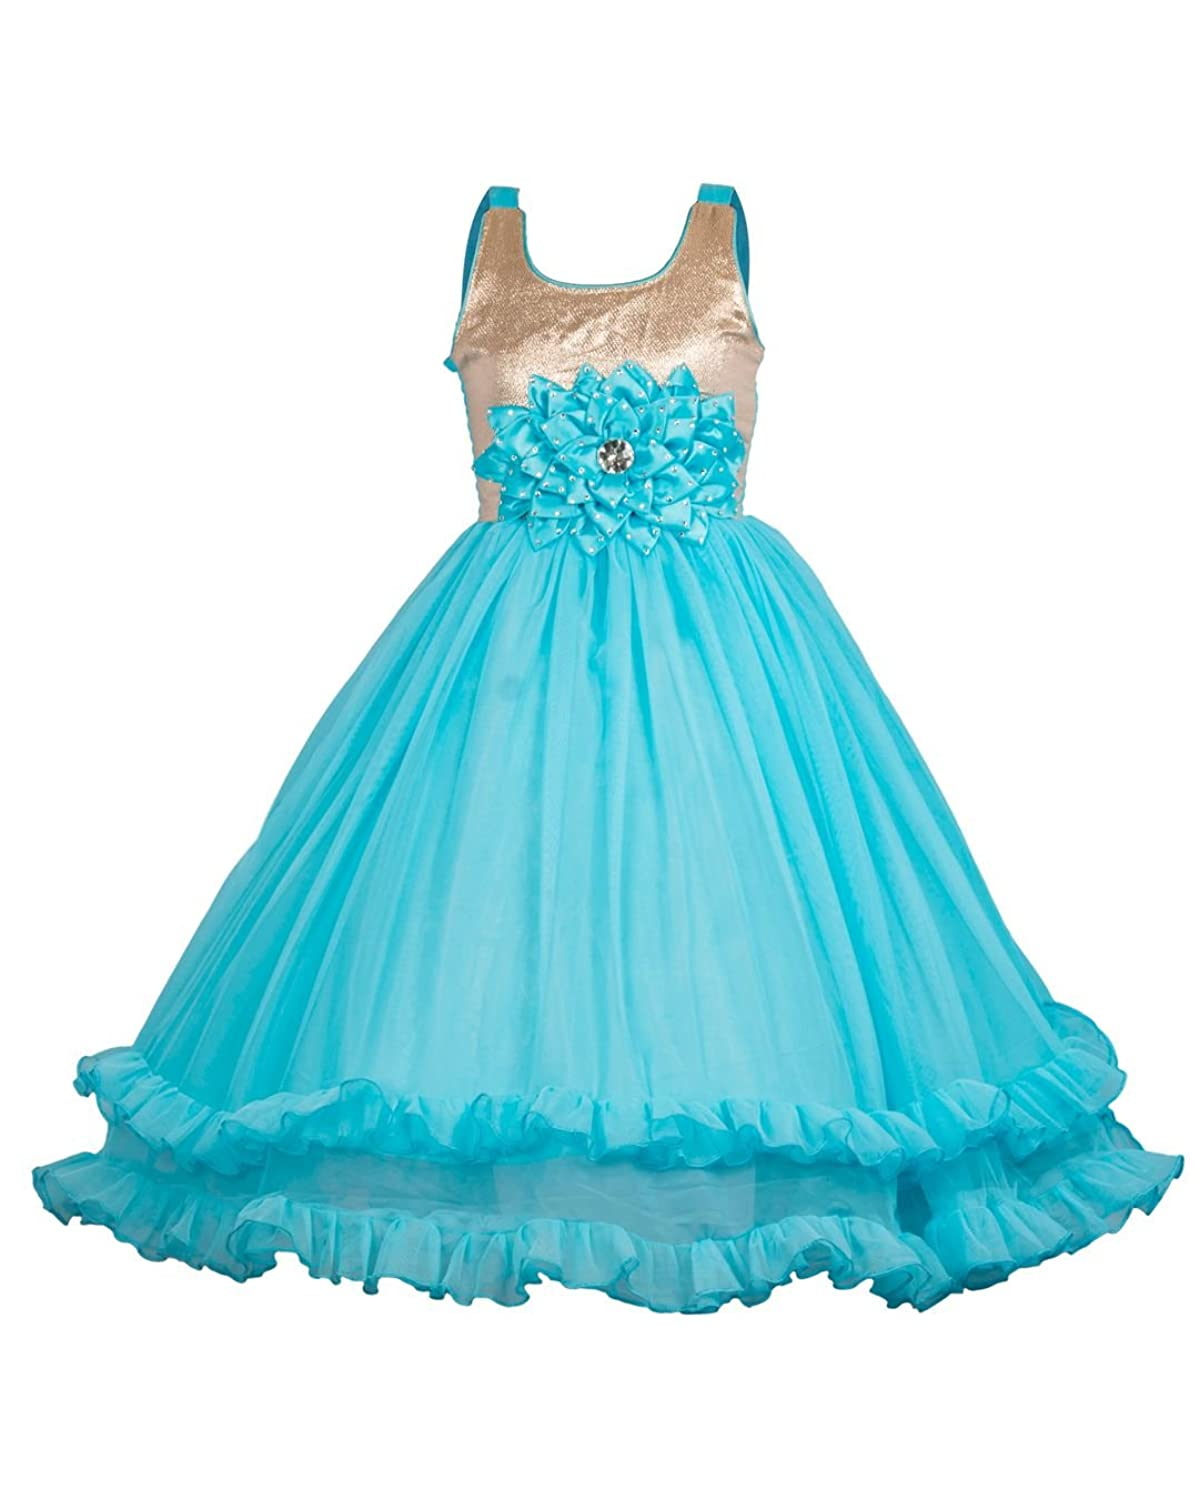 My Lil Princess Baby Girl\'s Net & Satin Birthday Party Dress: Amazon ...